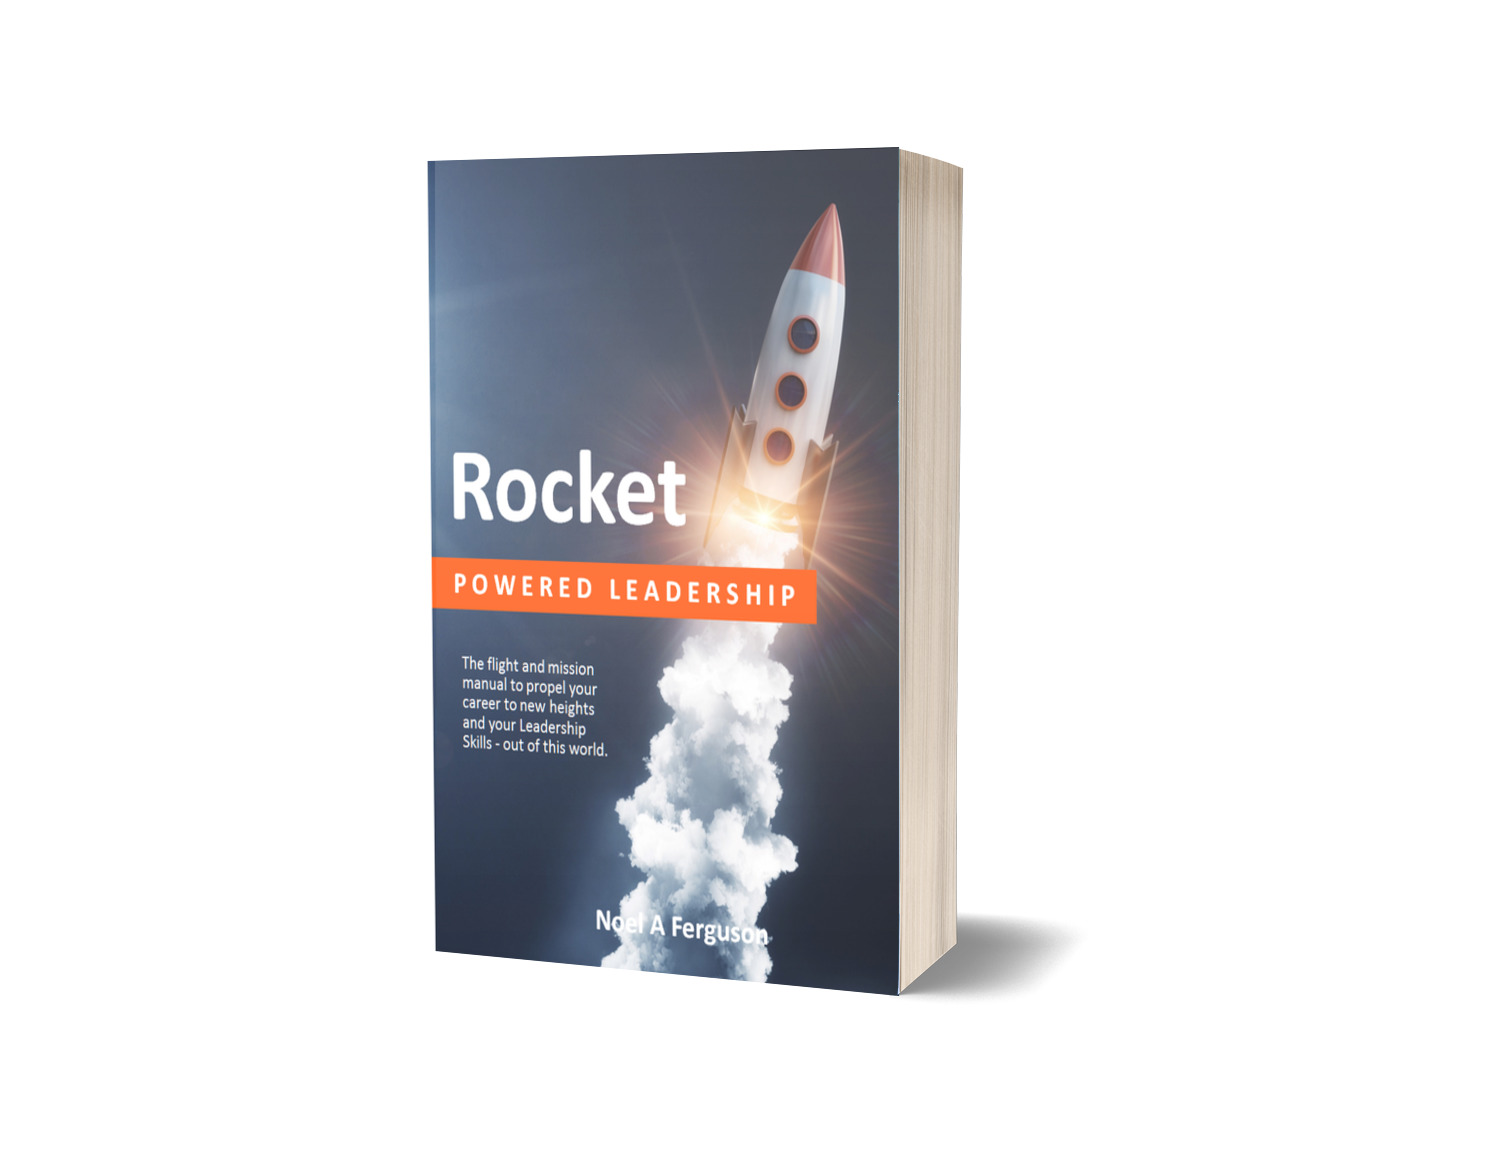 Rocket Powered Leadership